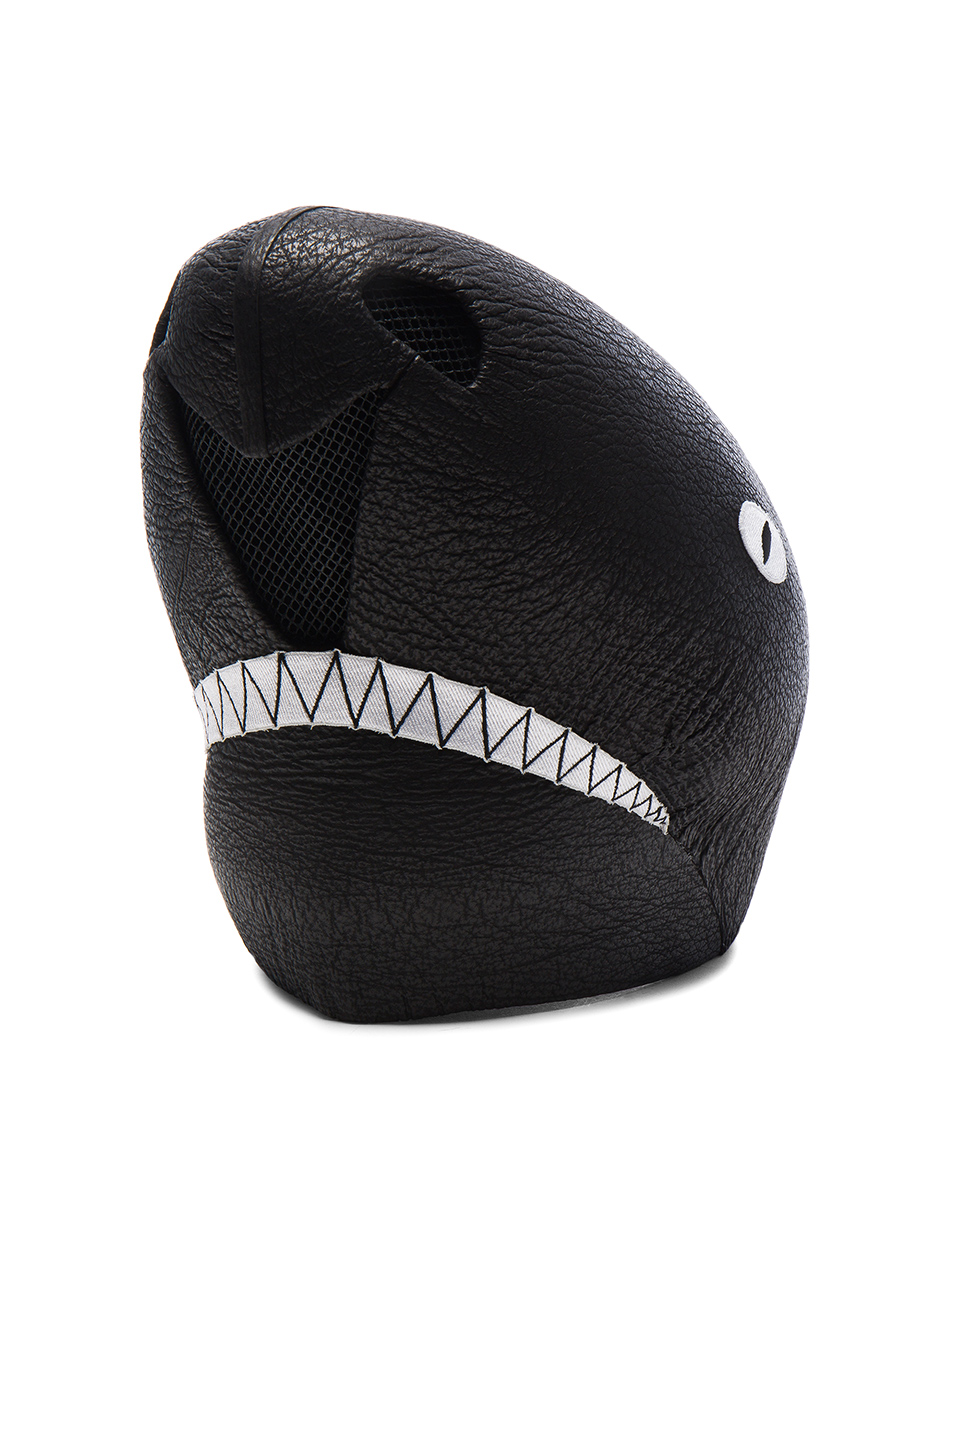 Thom Browne Shark Mask in Black